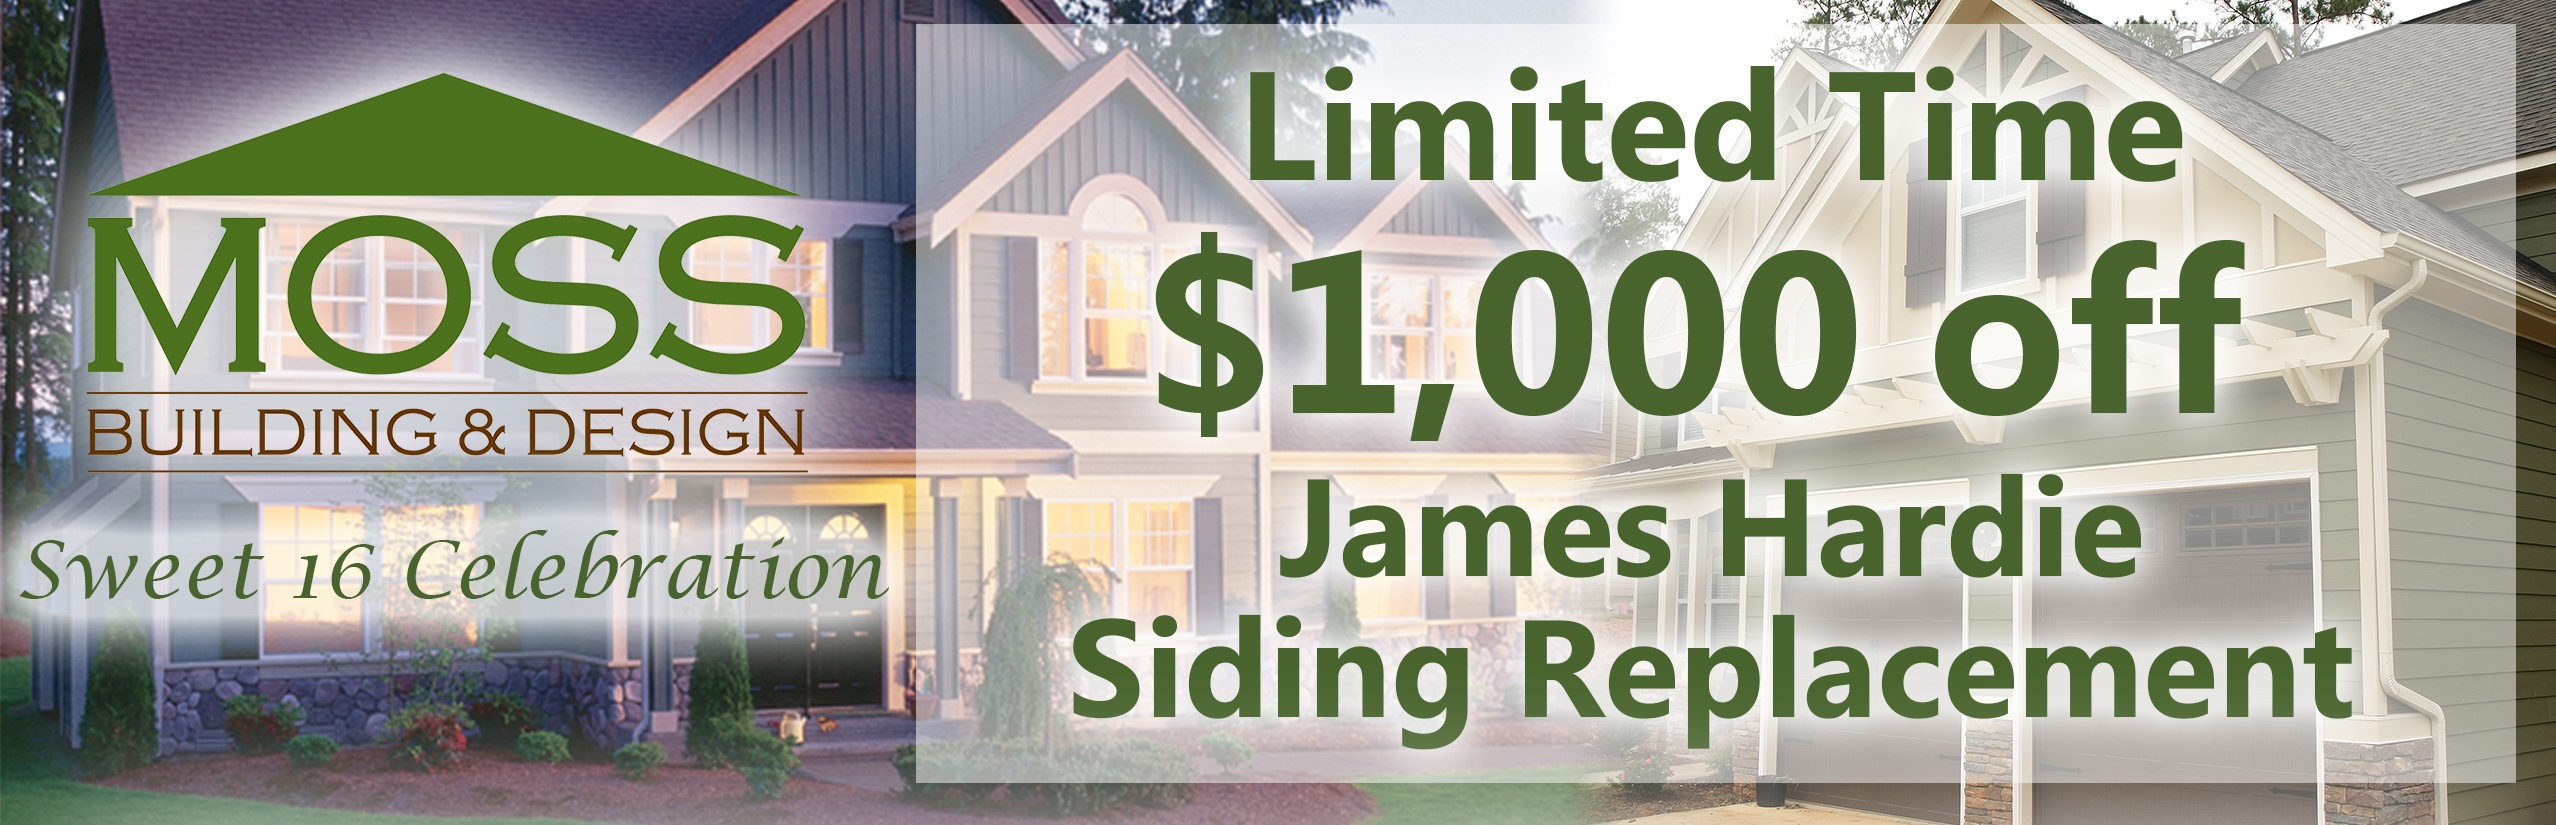 Money off James Hardie Siding